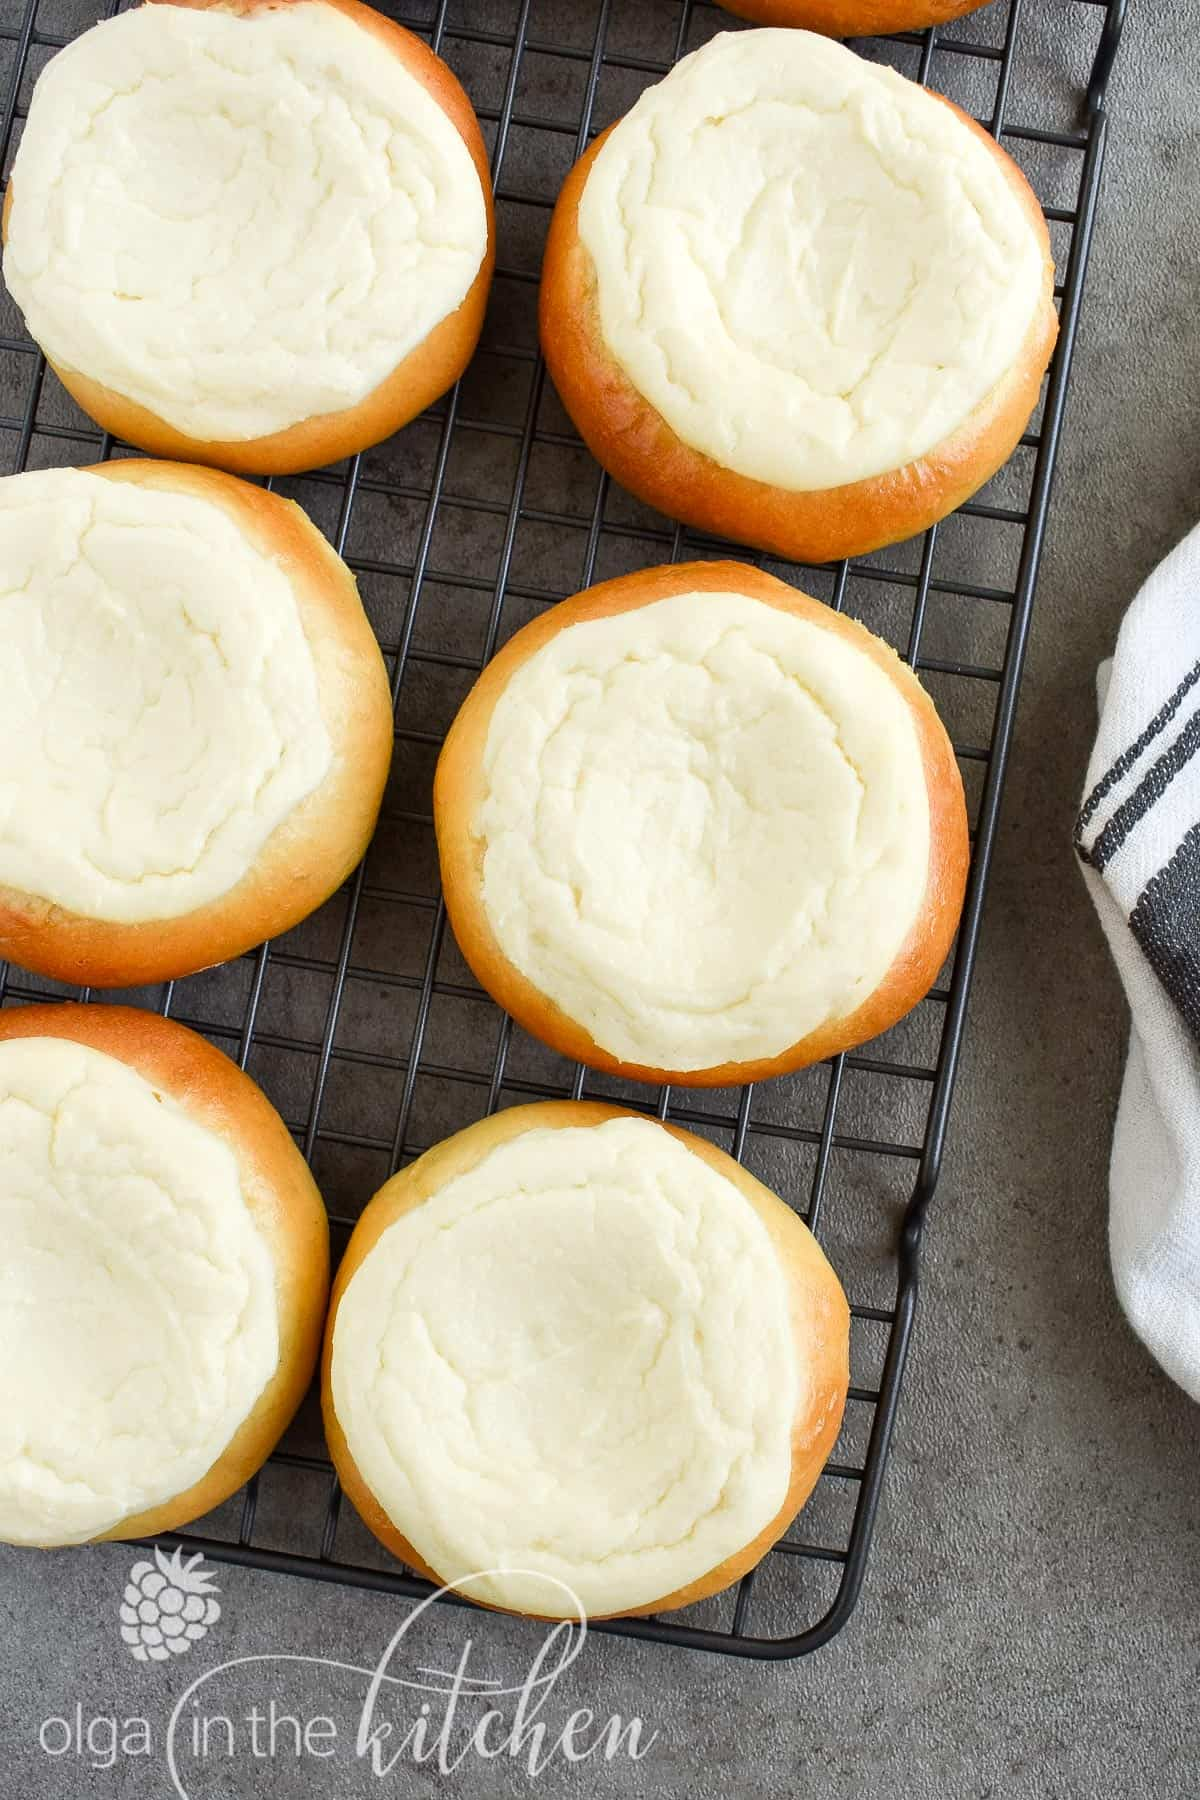 Sweet Cheese Filled Buns (Vatrushka Recipe): freezer-friendly, soft and fluffy sweet buns filled with smooth farmer's cheese filling. | olgainthekitchen.com #vatrushka #sweetbuns #farmerscheese #olgainthekitchen #bread #ukrainianrecipe #cheesebuns